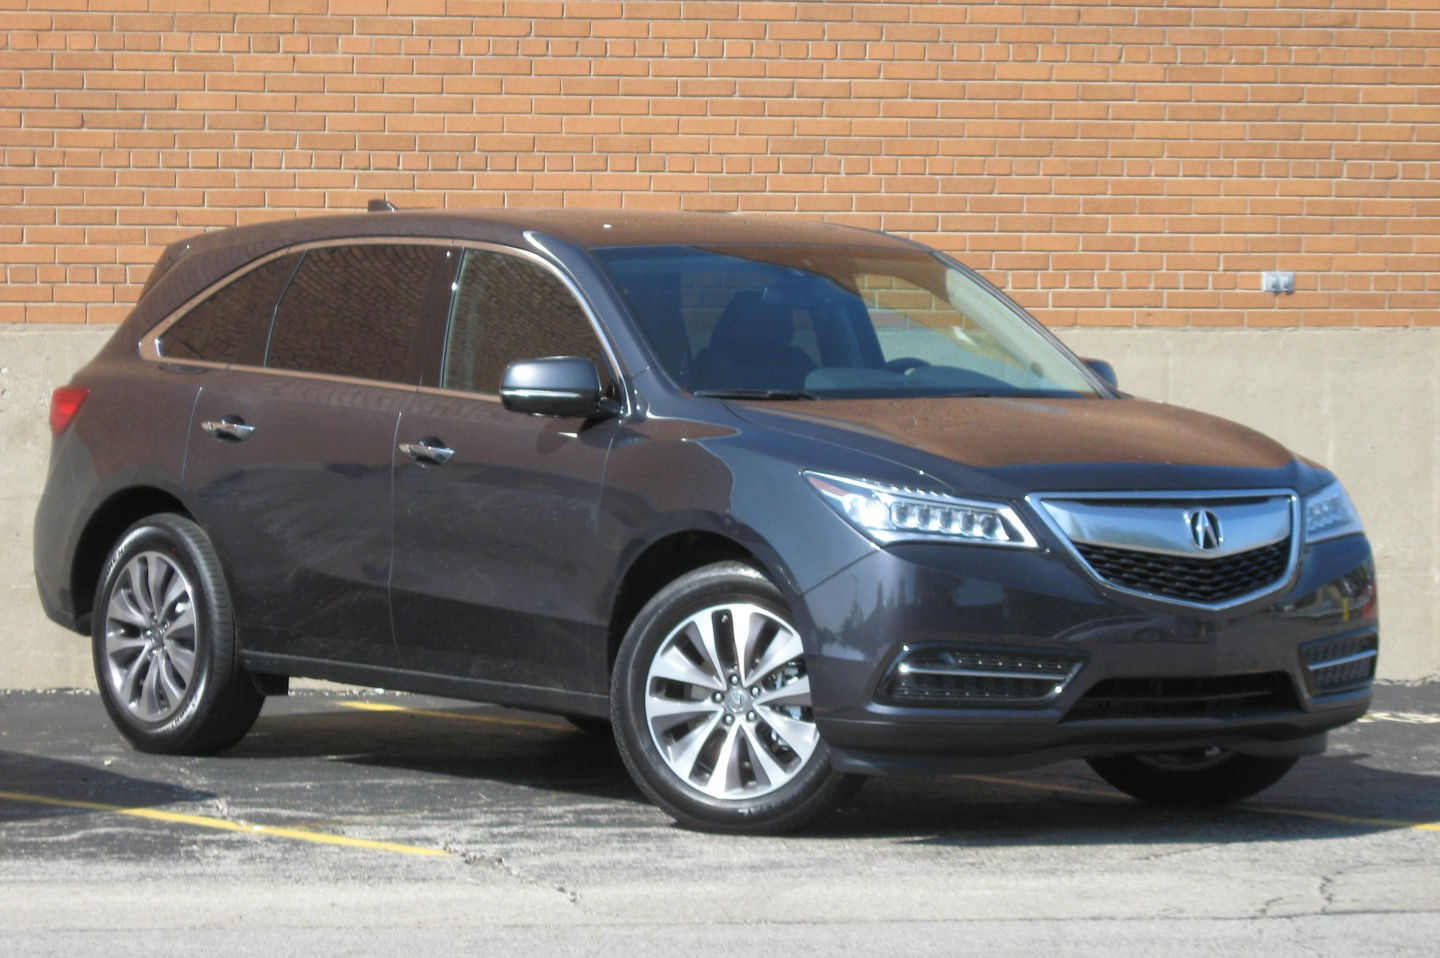 test drive 2014 acura mdx the daily drive consumer guide the rh blog consumerguide com Sustianable Consumer Guide Fishing Consumers' Guide Clip Art